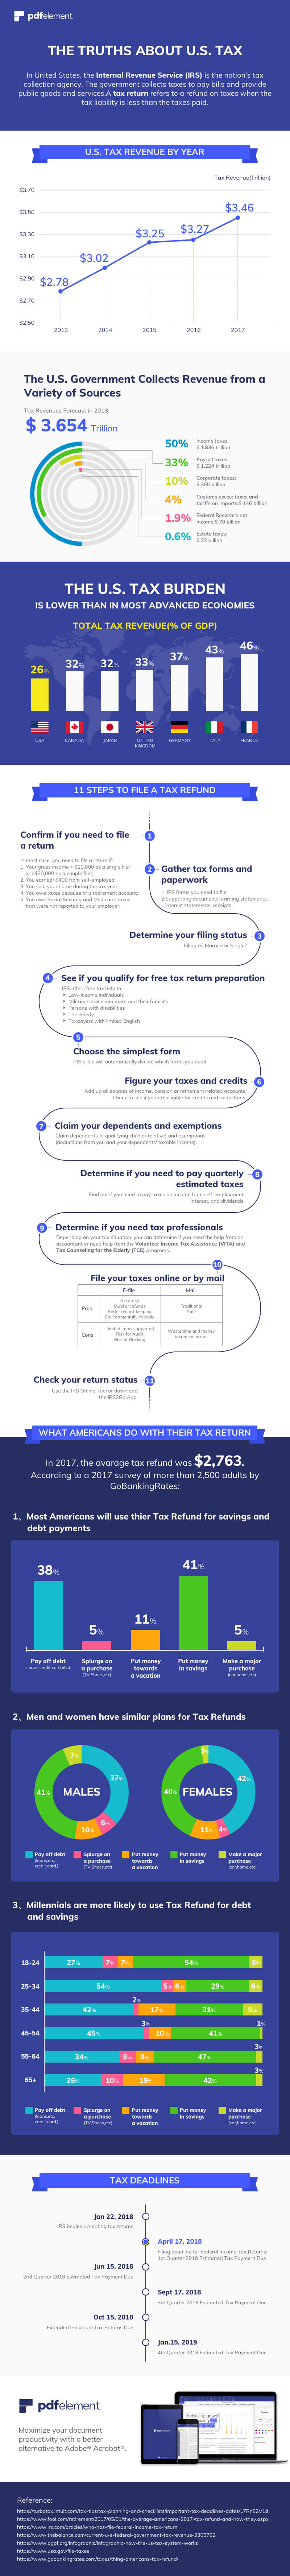 Truths-about-US-Tax-infographic-plaza